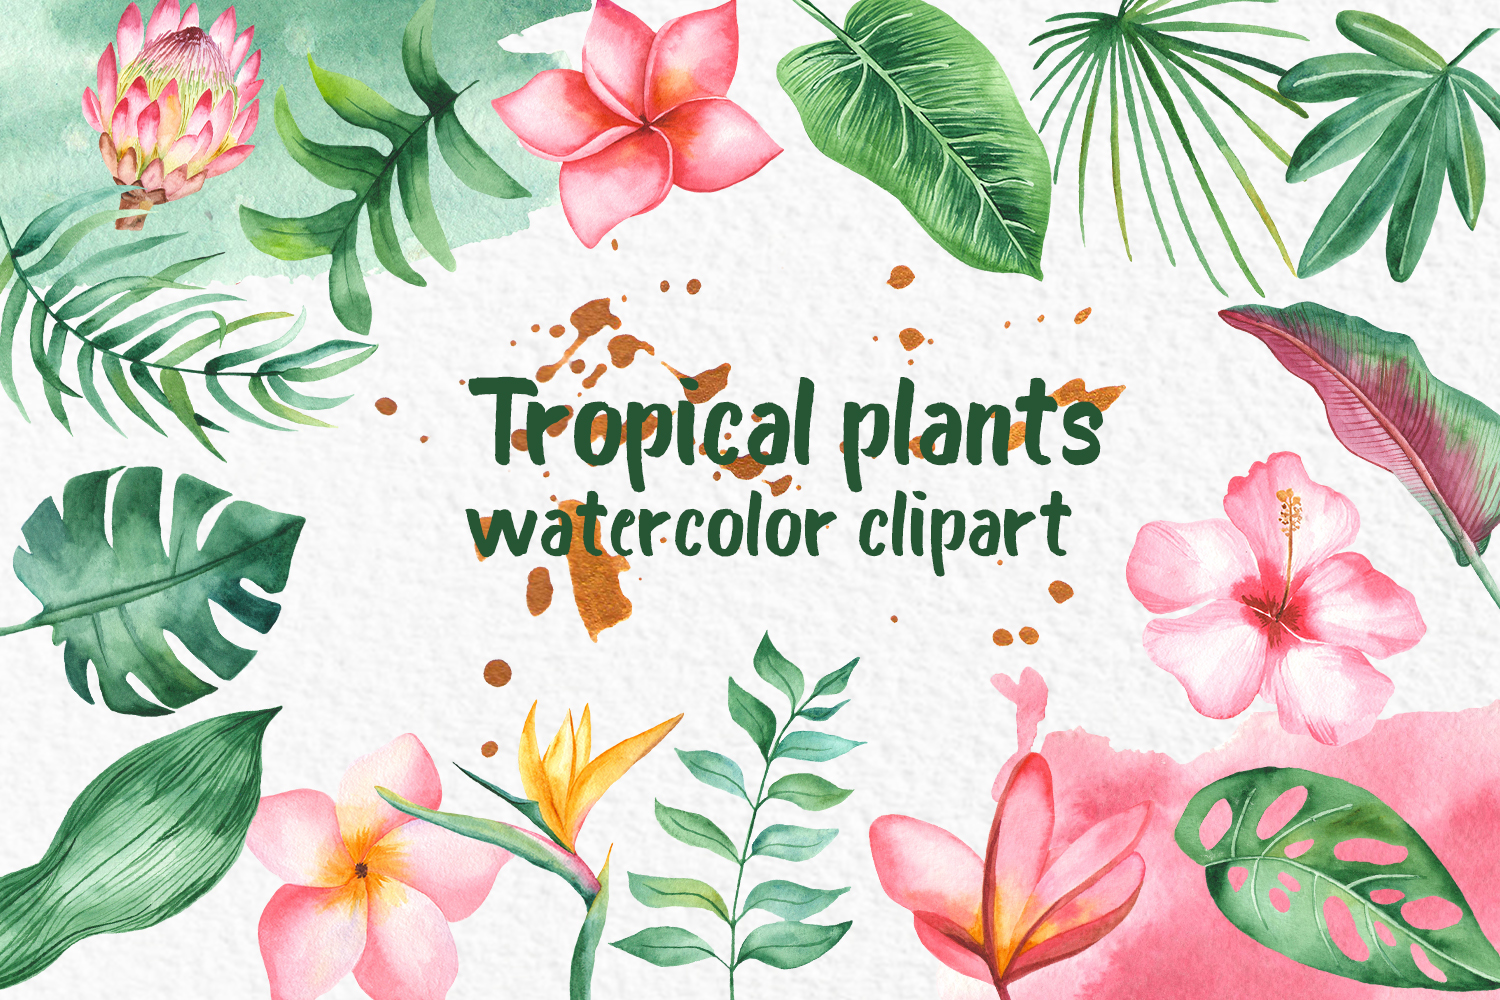 Tropical plant clipart clip free download Tropical plants Watercolor clipart Leaves and flowers clip free download